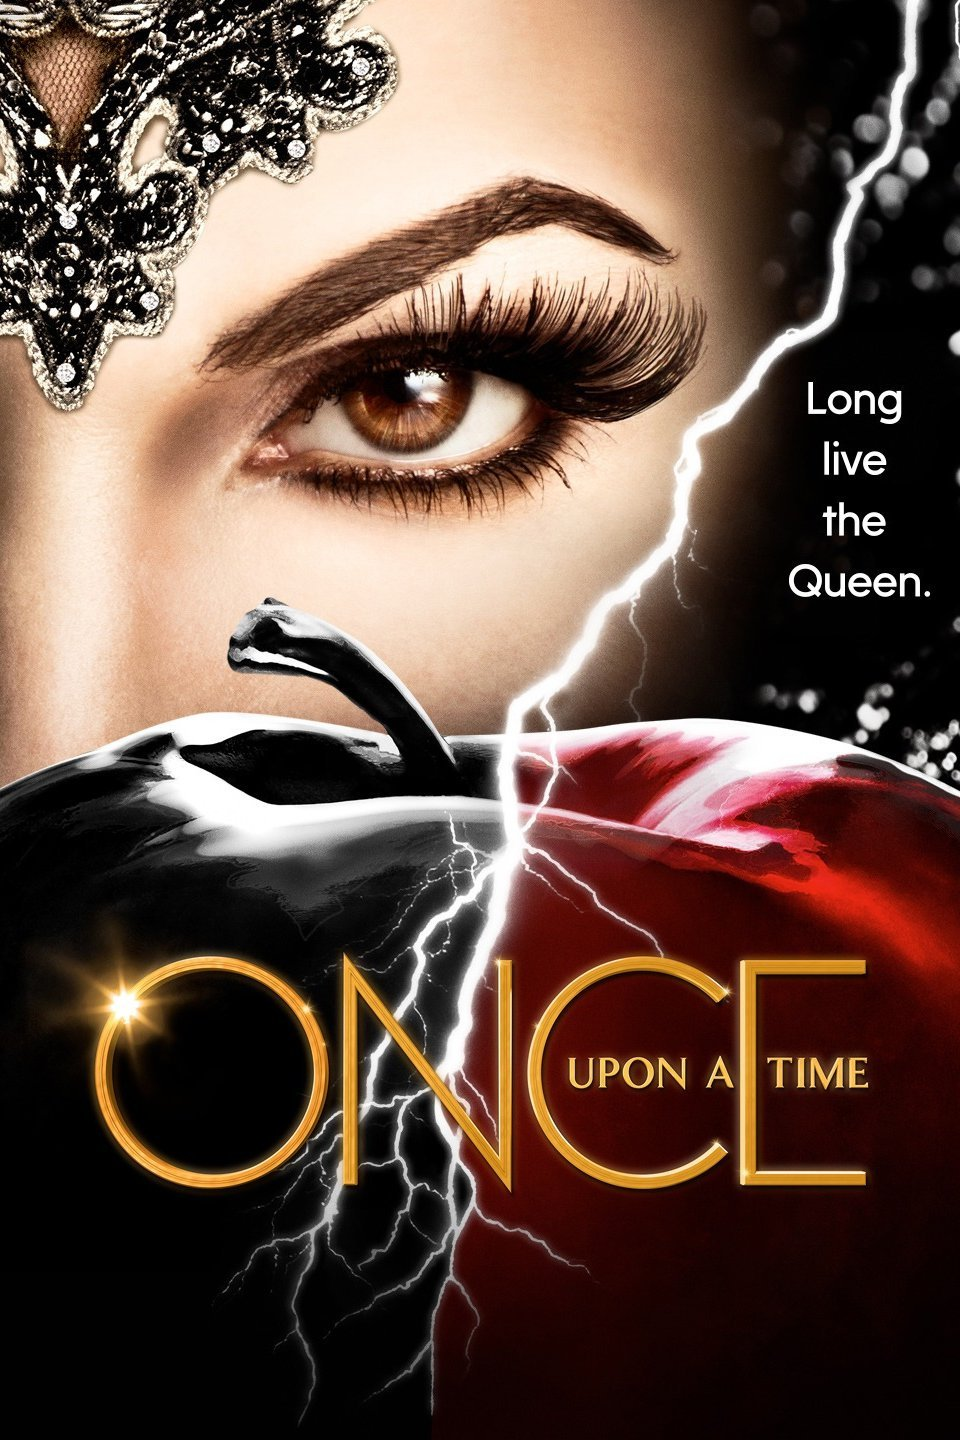 TV Review: Once Upon a Time | Merlin's Musings